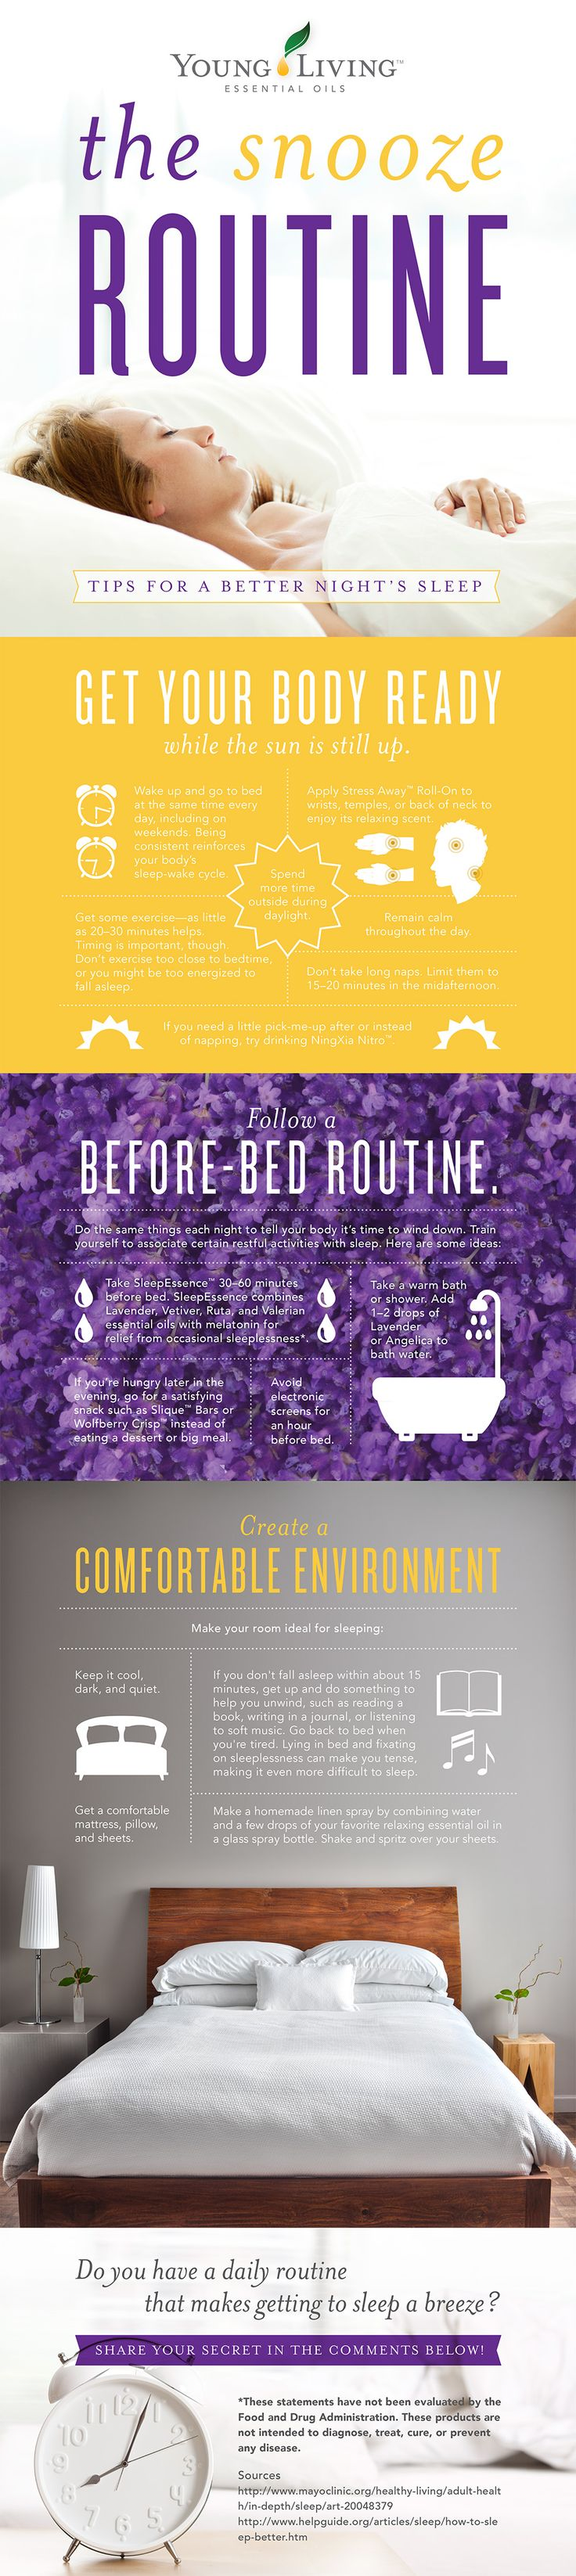 Get a Better Night Sleep - quick tips from Young Living  |  TheConfidentMom.com